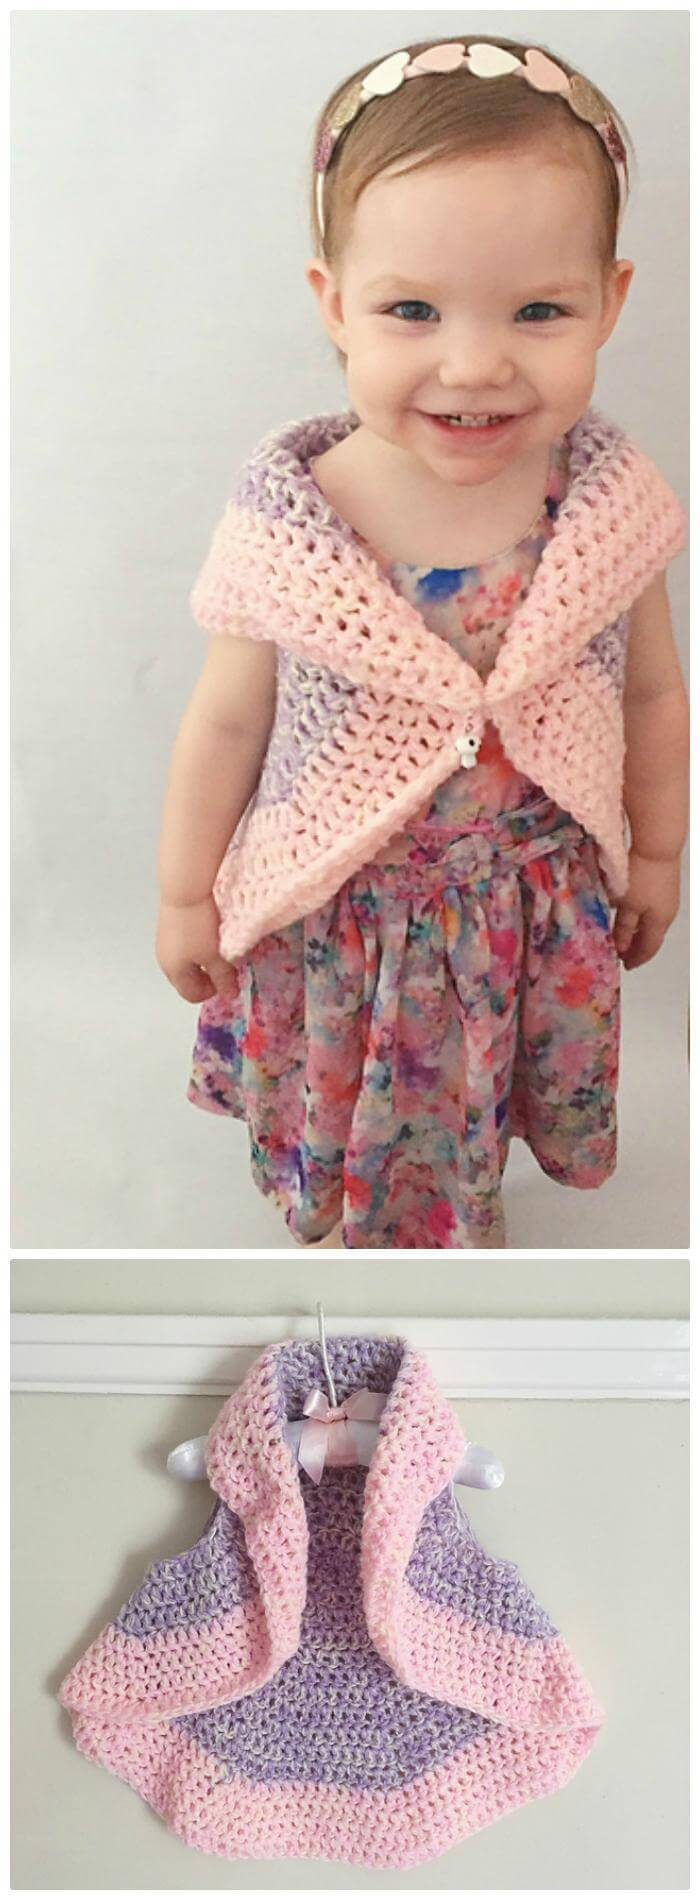 Crochet Bella Circle Waistcoat - Free Vest Circular Pattern for Baby